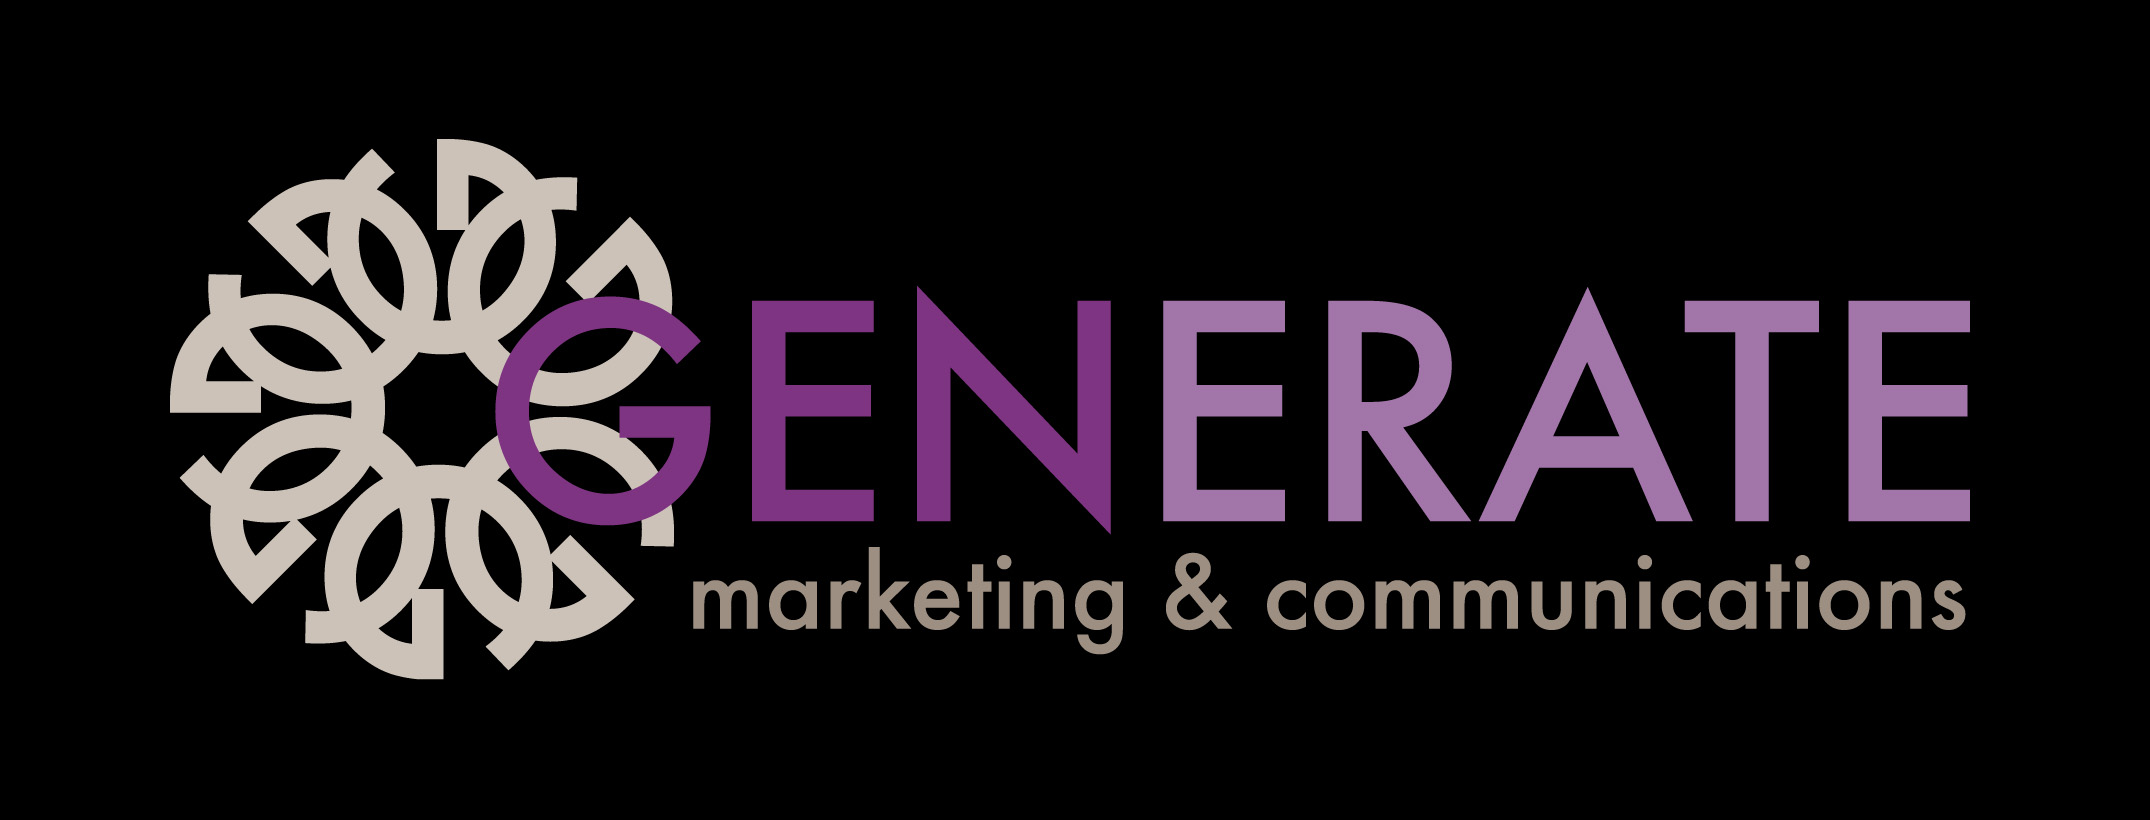 Generate Marketing & Communications